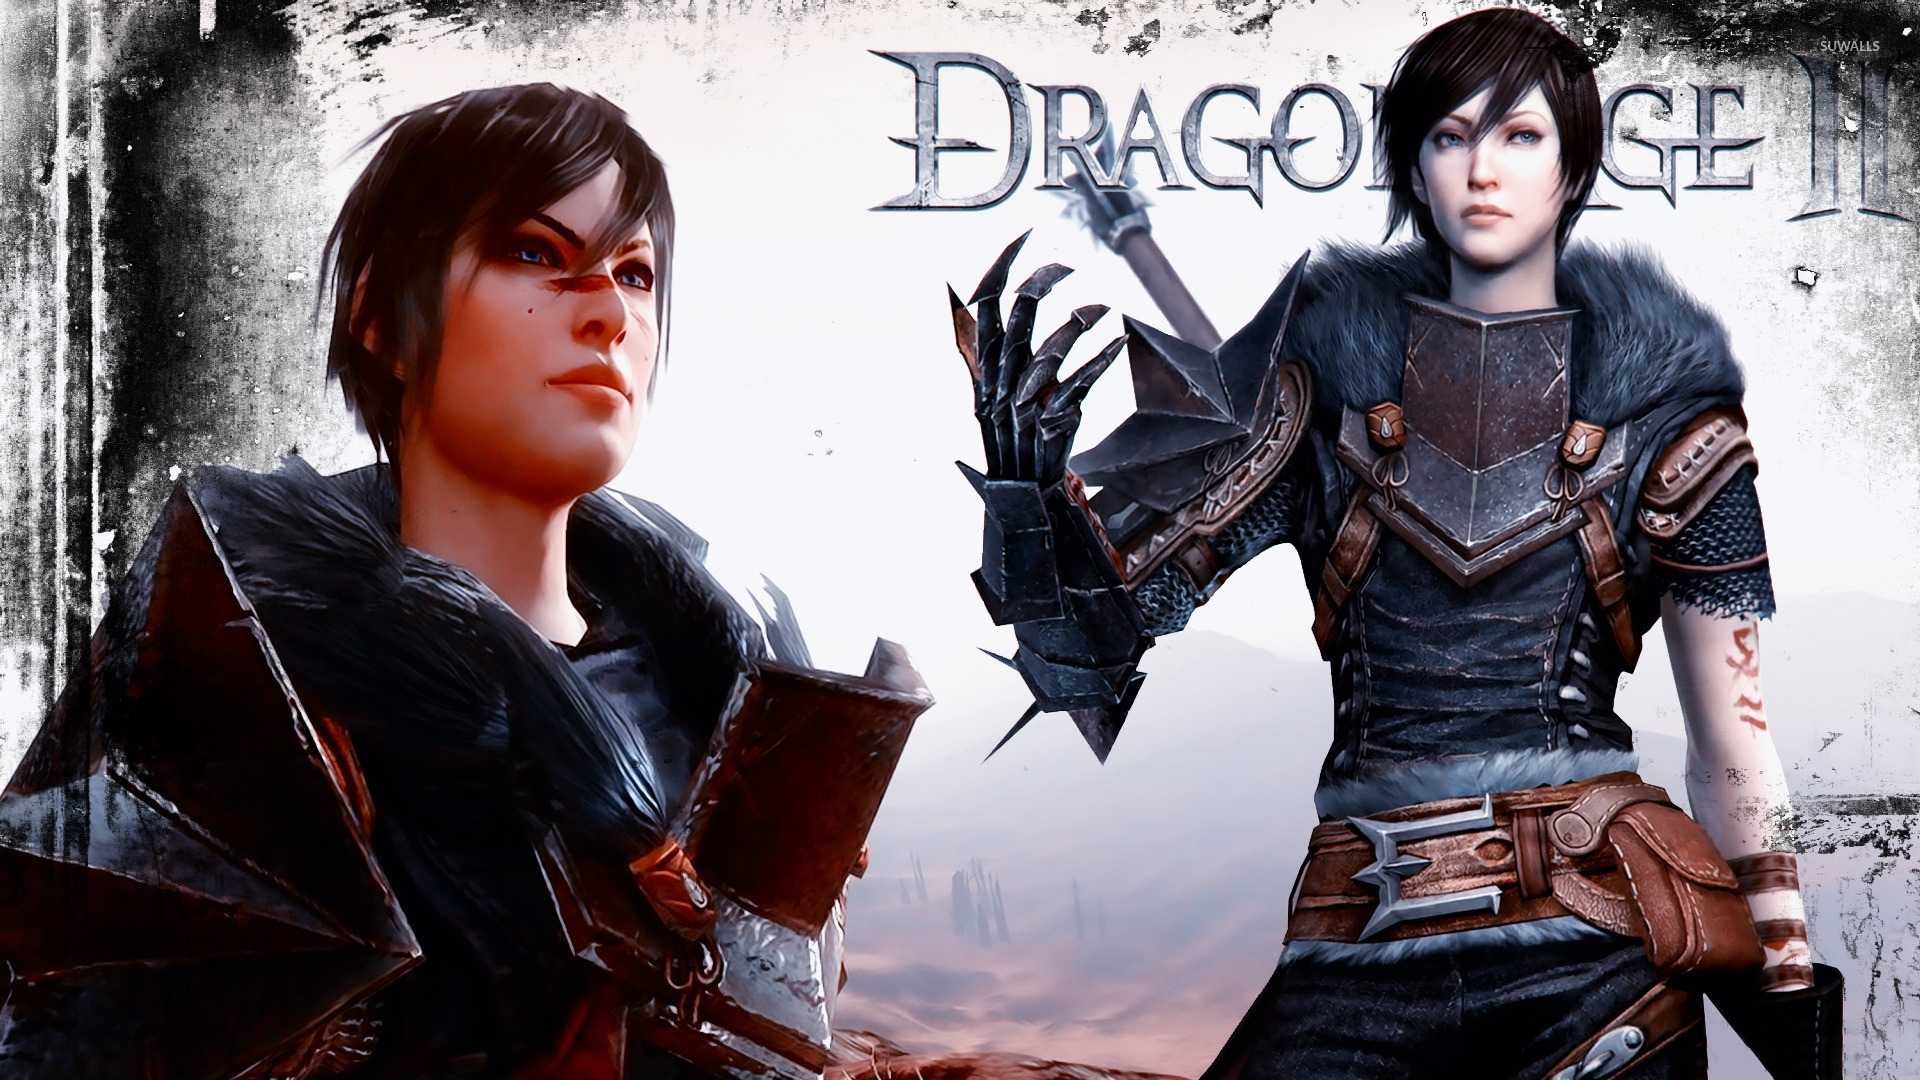 dragon age ii [2] wallpaper - game wallpapers - #16537